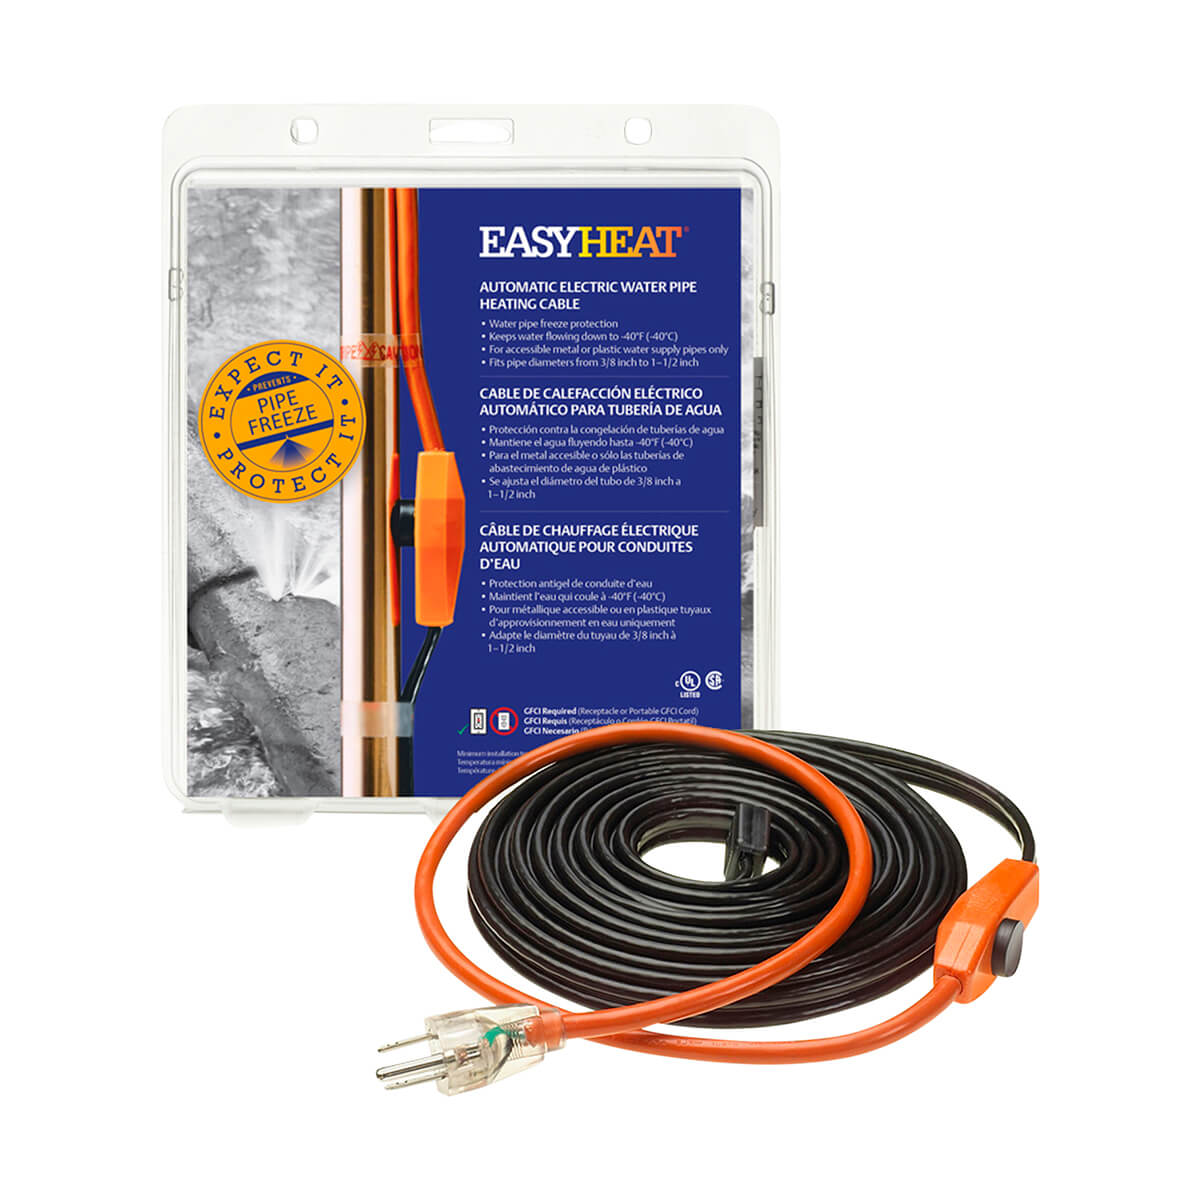 Pipe Heating Cable - 9'